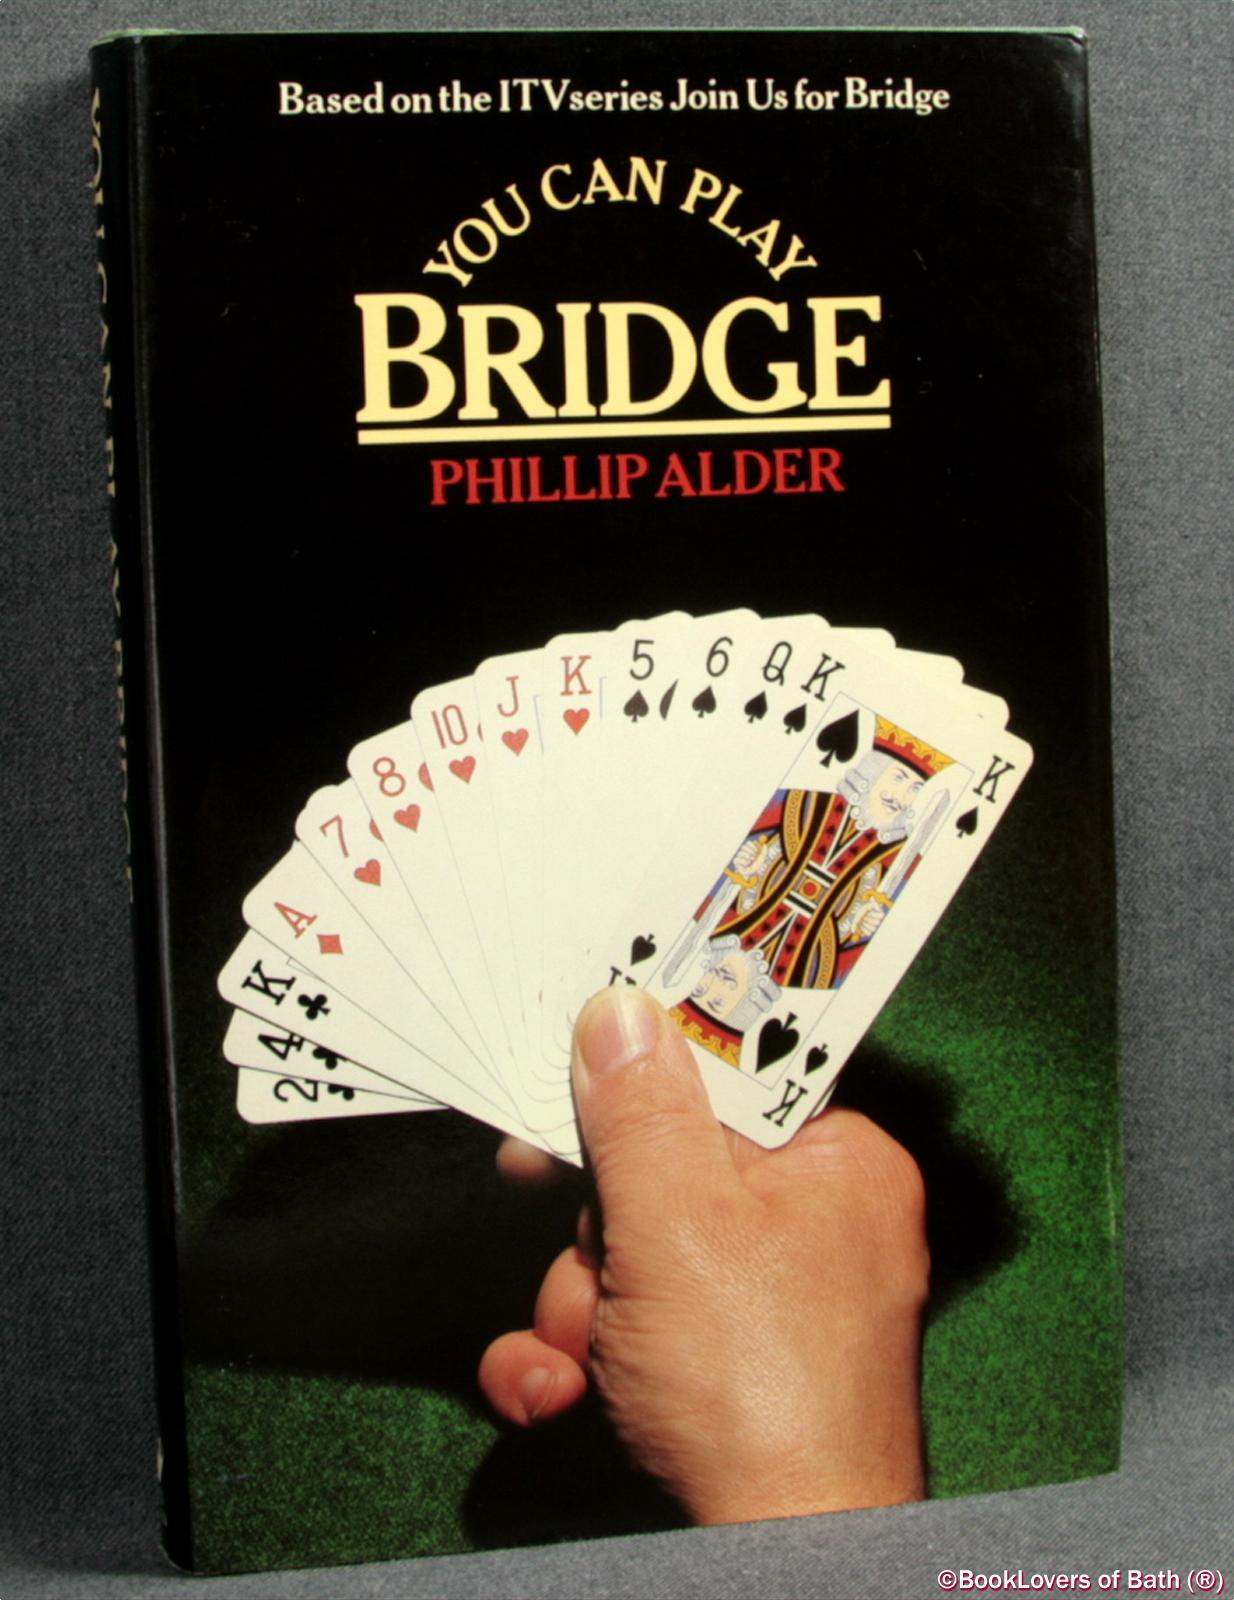 You Can Play Bridge - Philip Alder